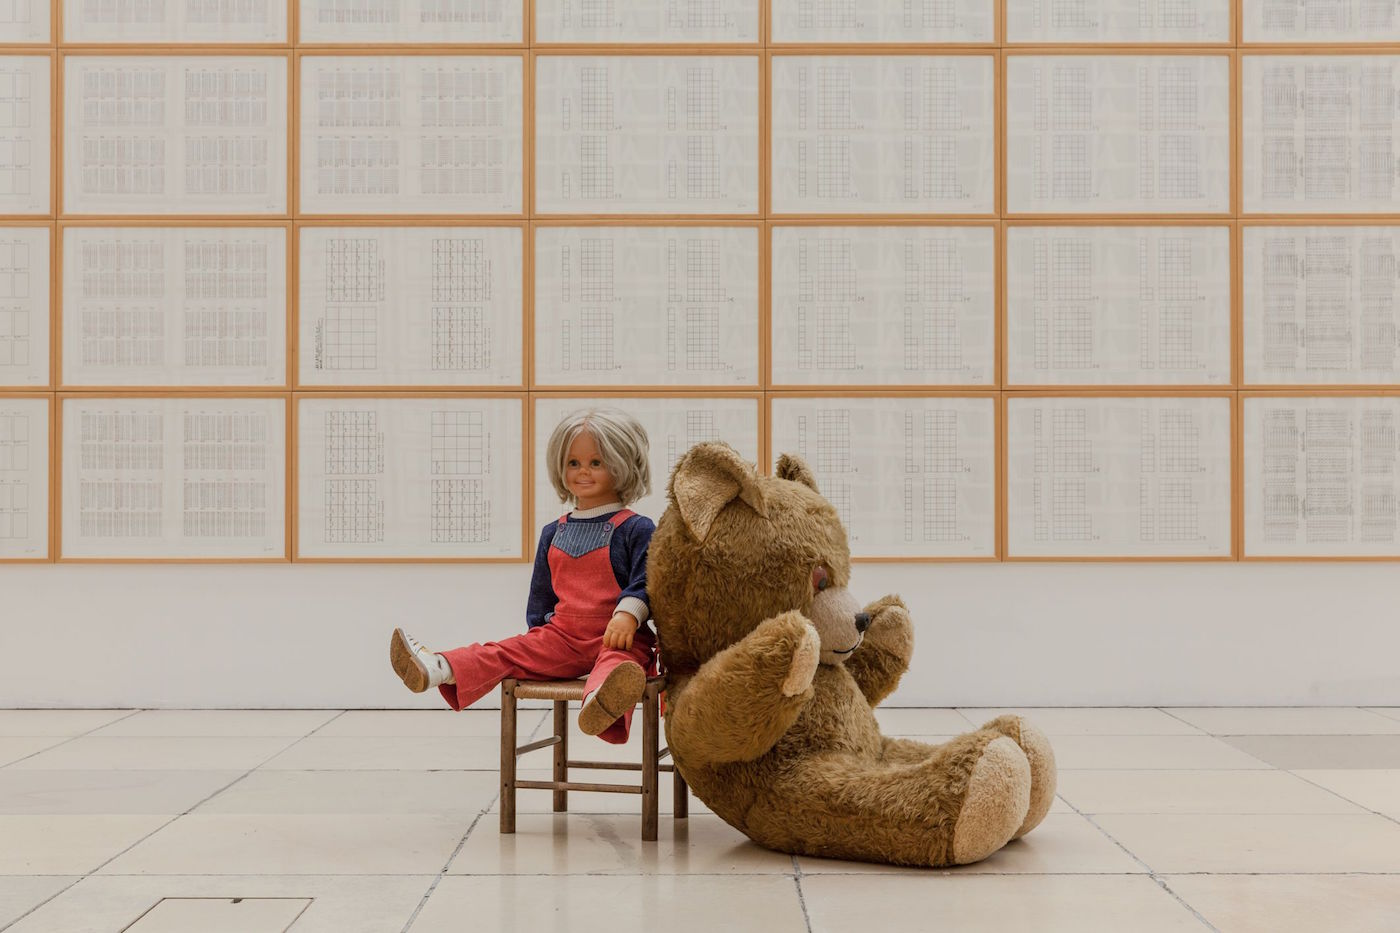 Hanne Darboven: Repetition Repetition Compulsion